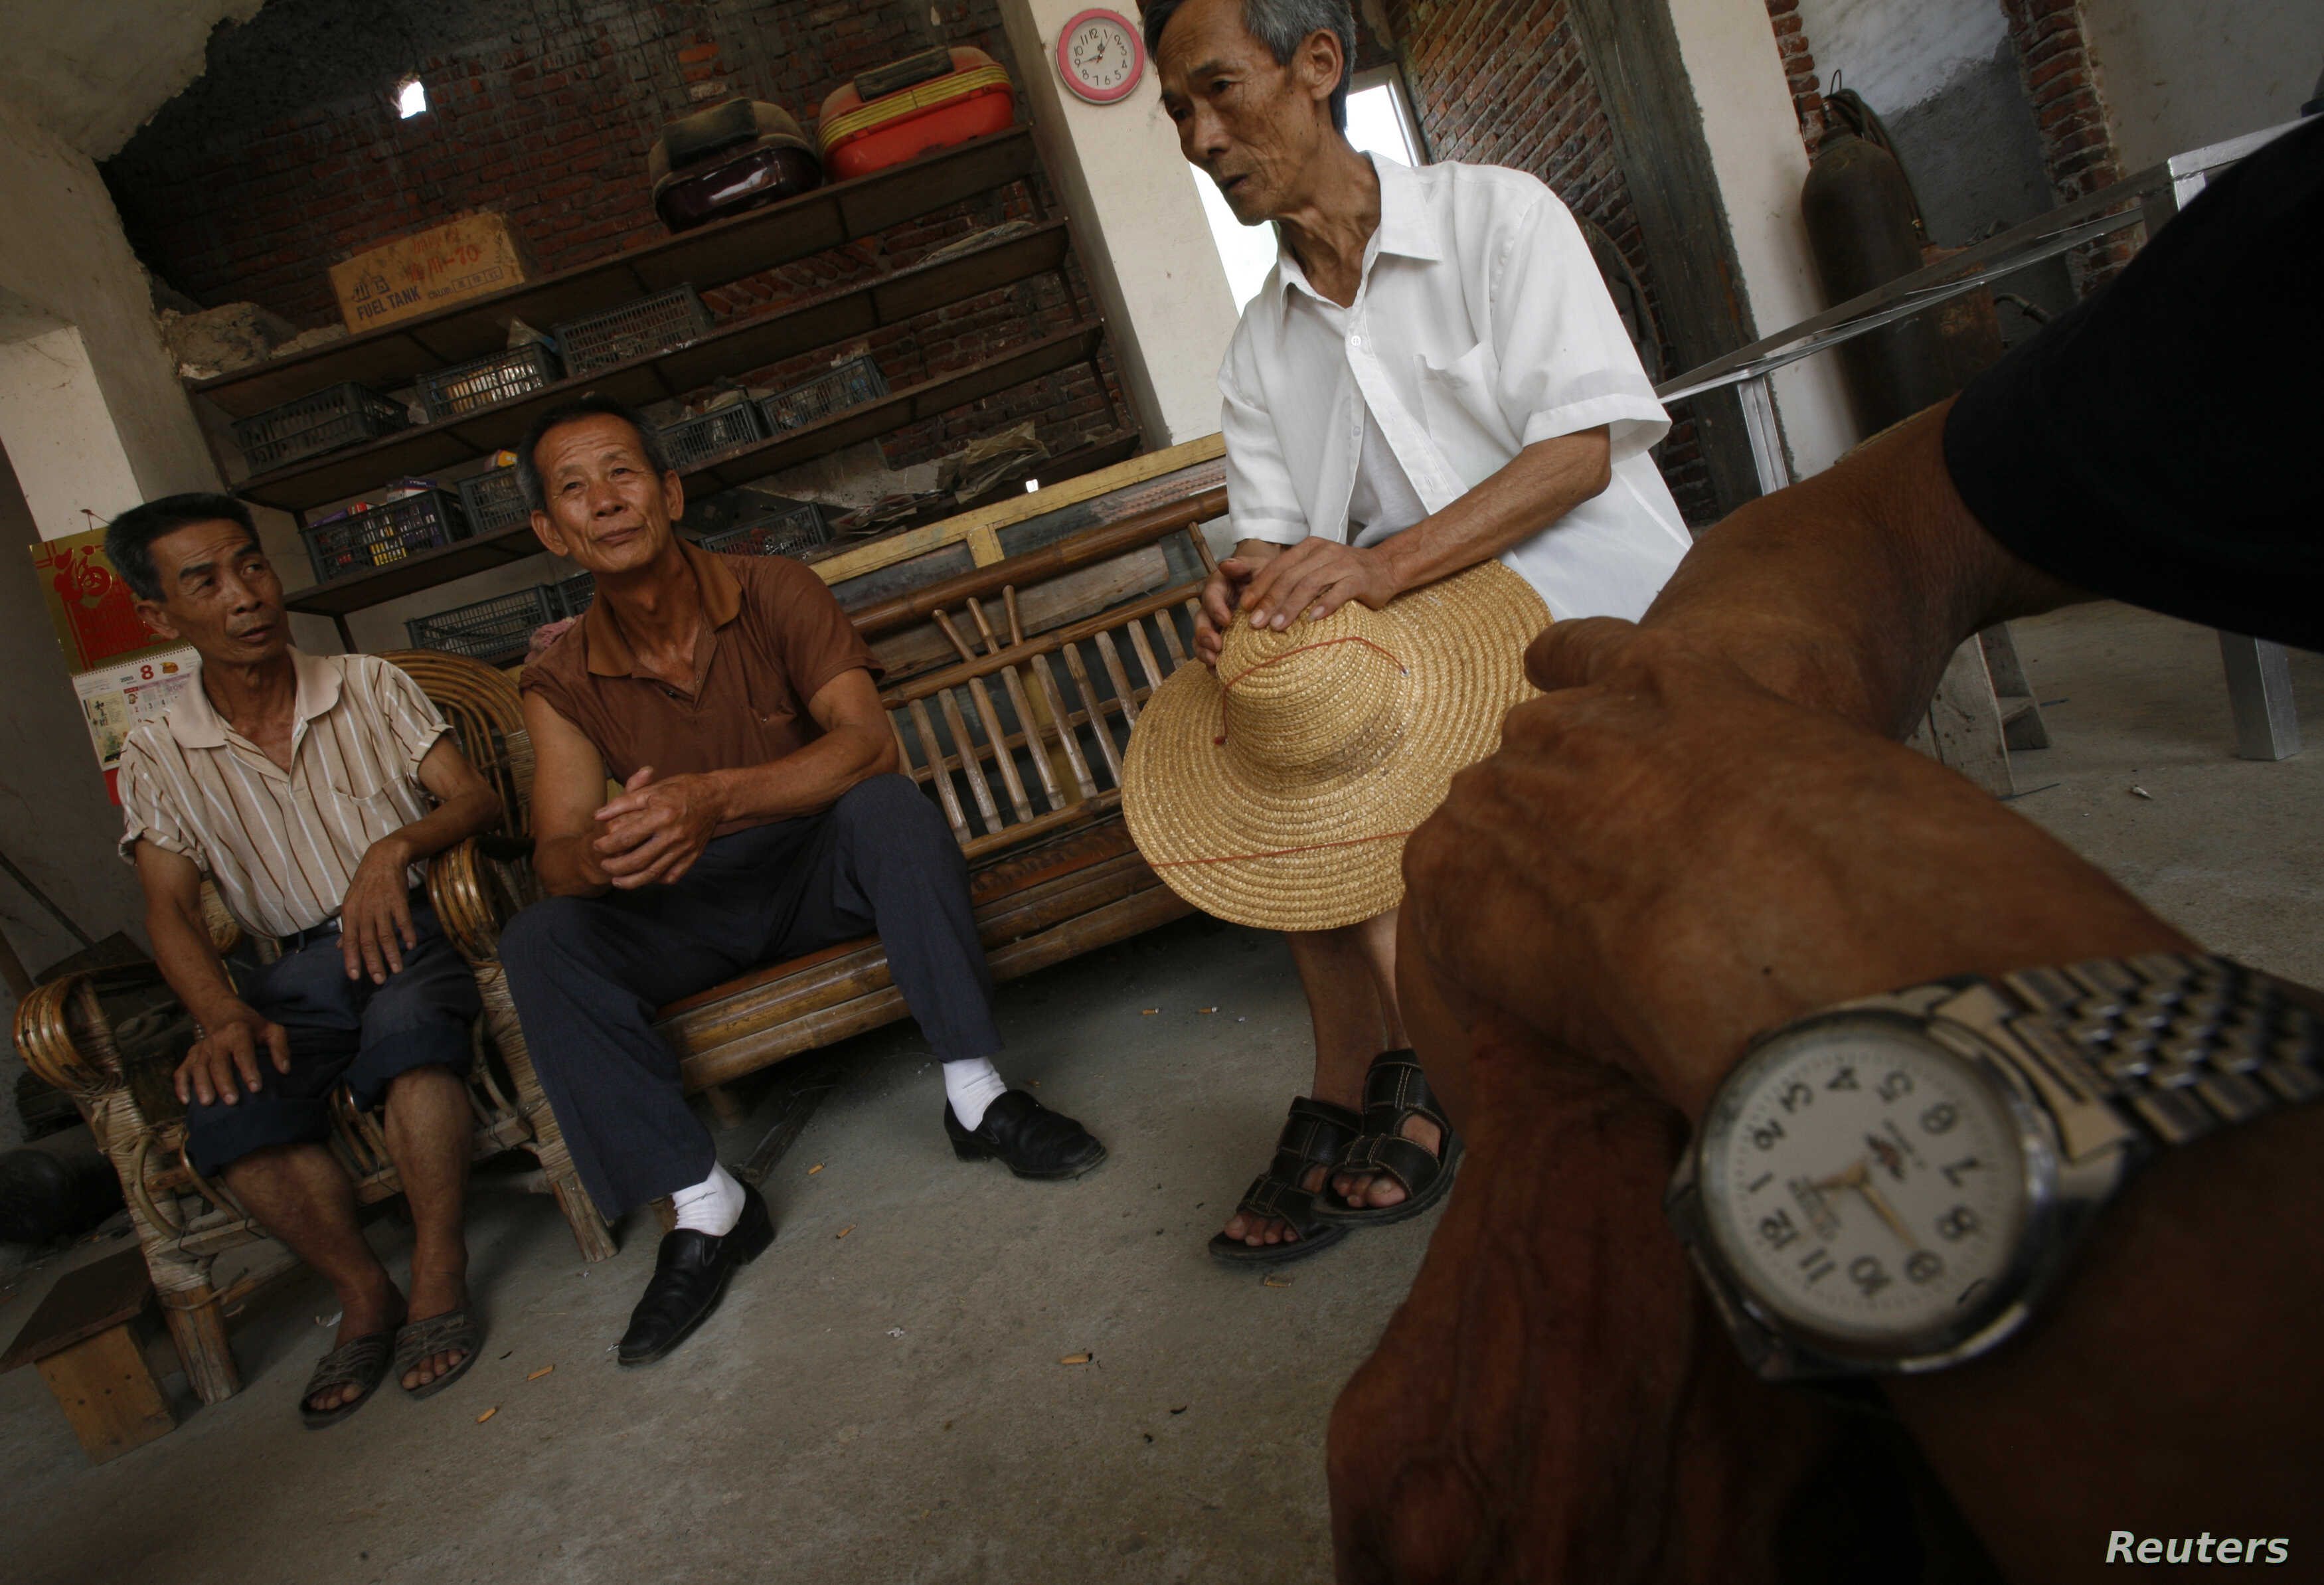 He Kangcai (L), 60, who is suffering from stomach cancer, chats with fellow villagers in his home at Shangba village in the northern part of China's Guangdong province August 27, 2009.